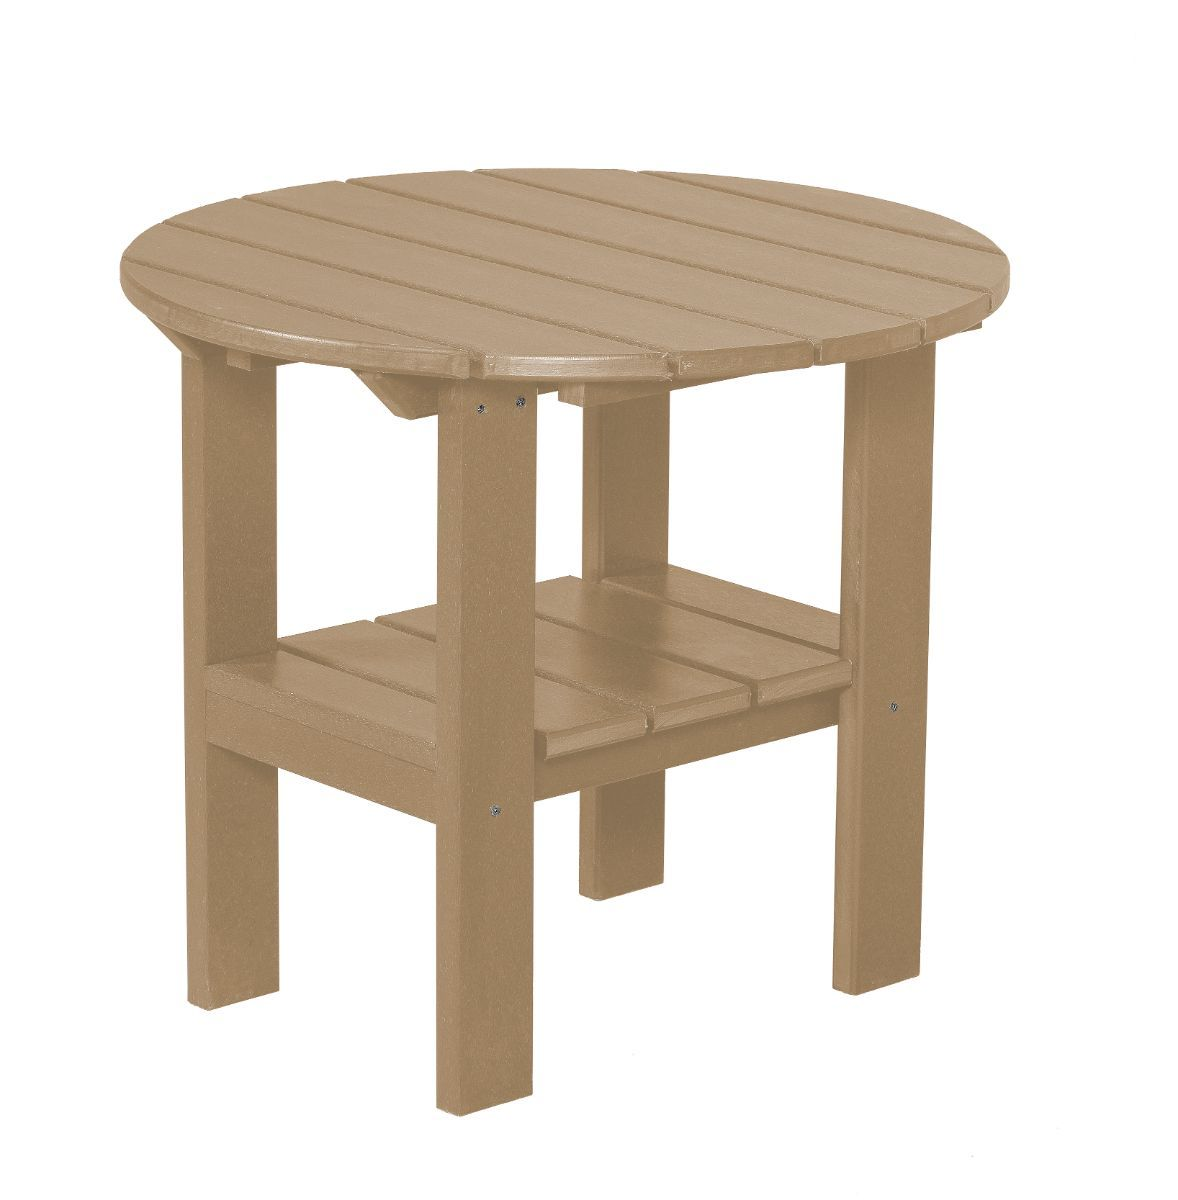 Weathered Wood Odessa Round Outdoor Side Table